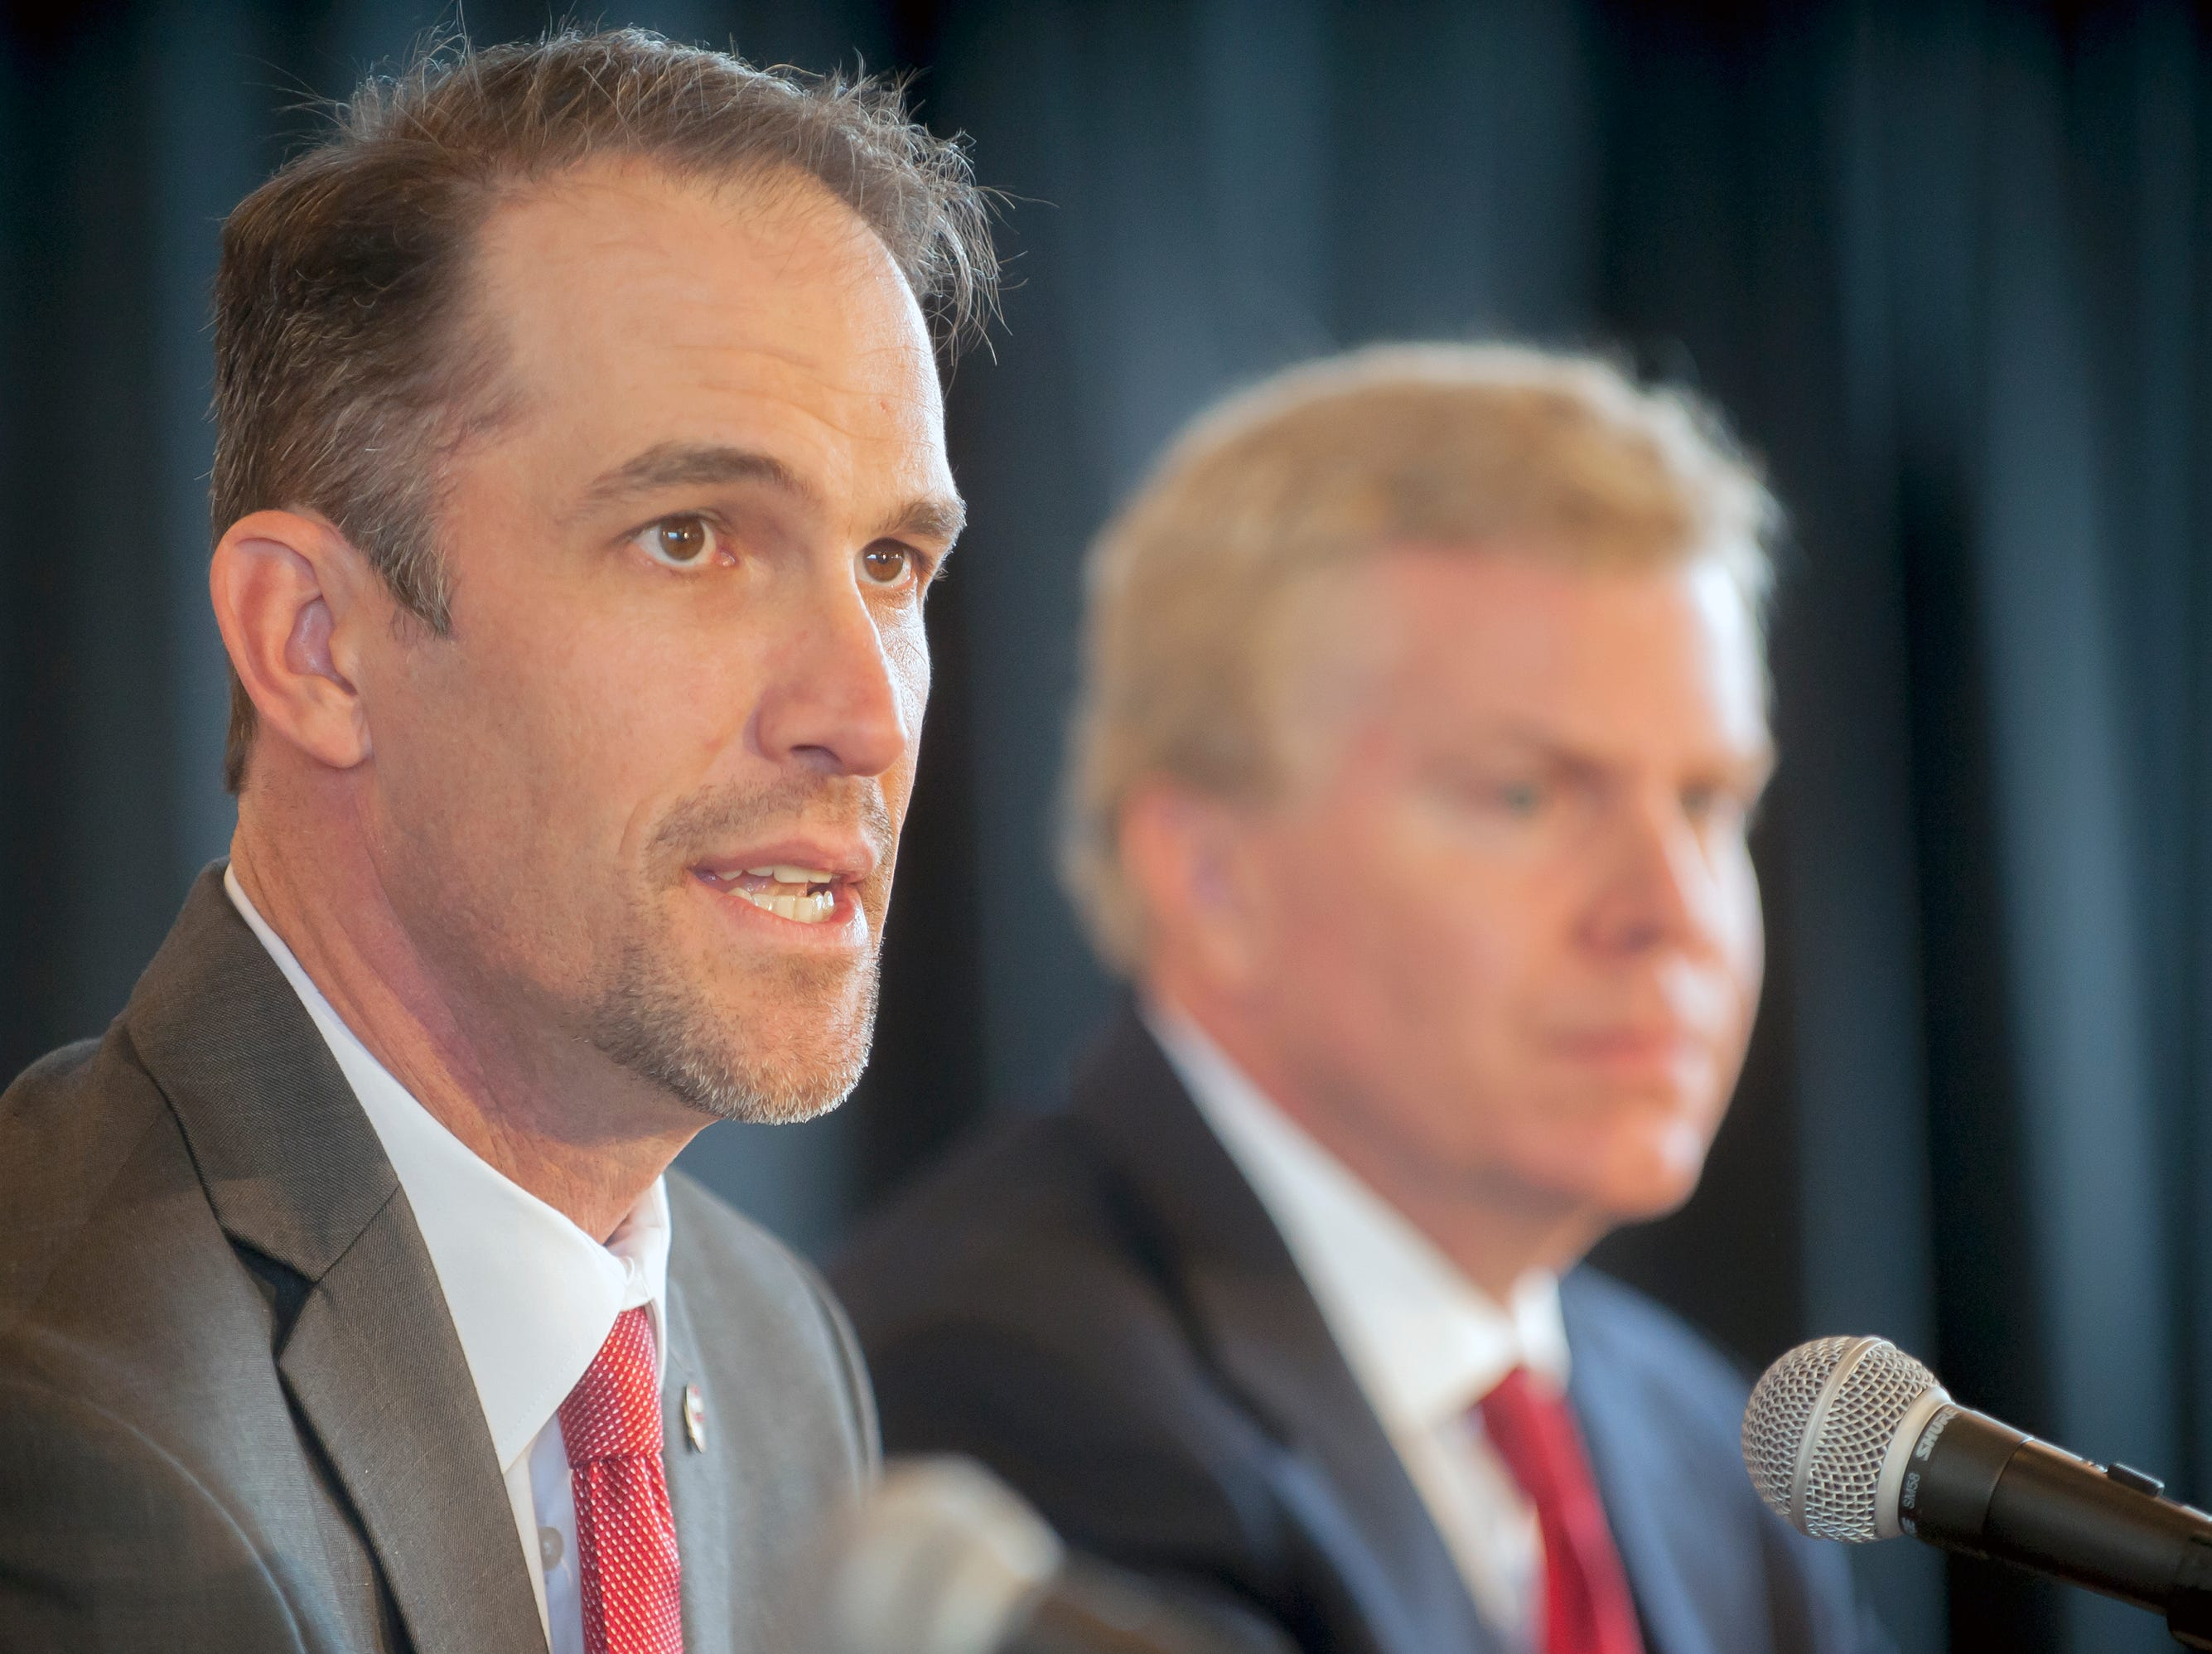 Western Kentucky's new head football coach Tyson Helton (left) speaks as athletic director Todd Stewart listens during an NCAA college football press conference, Tuesday, Nov. 27, 2018, at the Jack and Jackie Harbaugh Stadium Club at Houchens-Smith Stadium in Bowling Green, Ky.